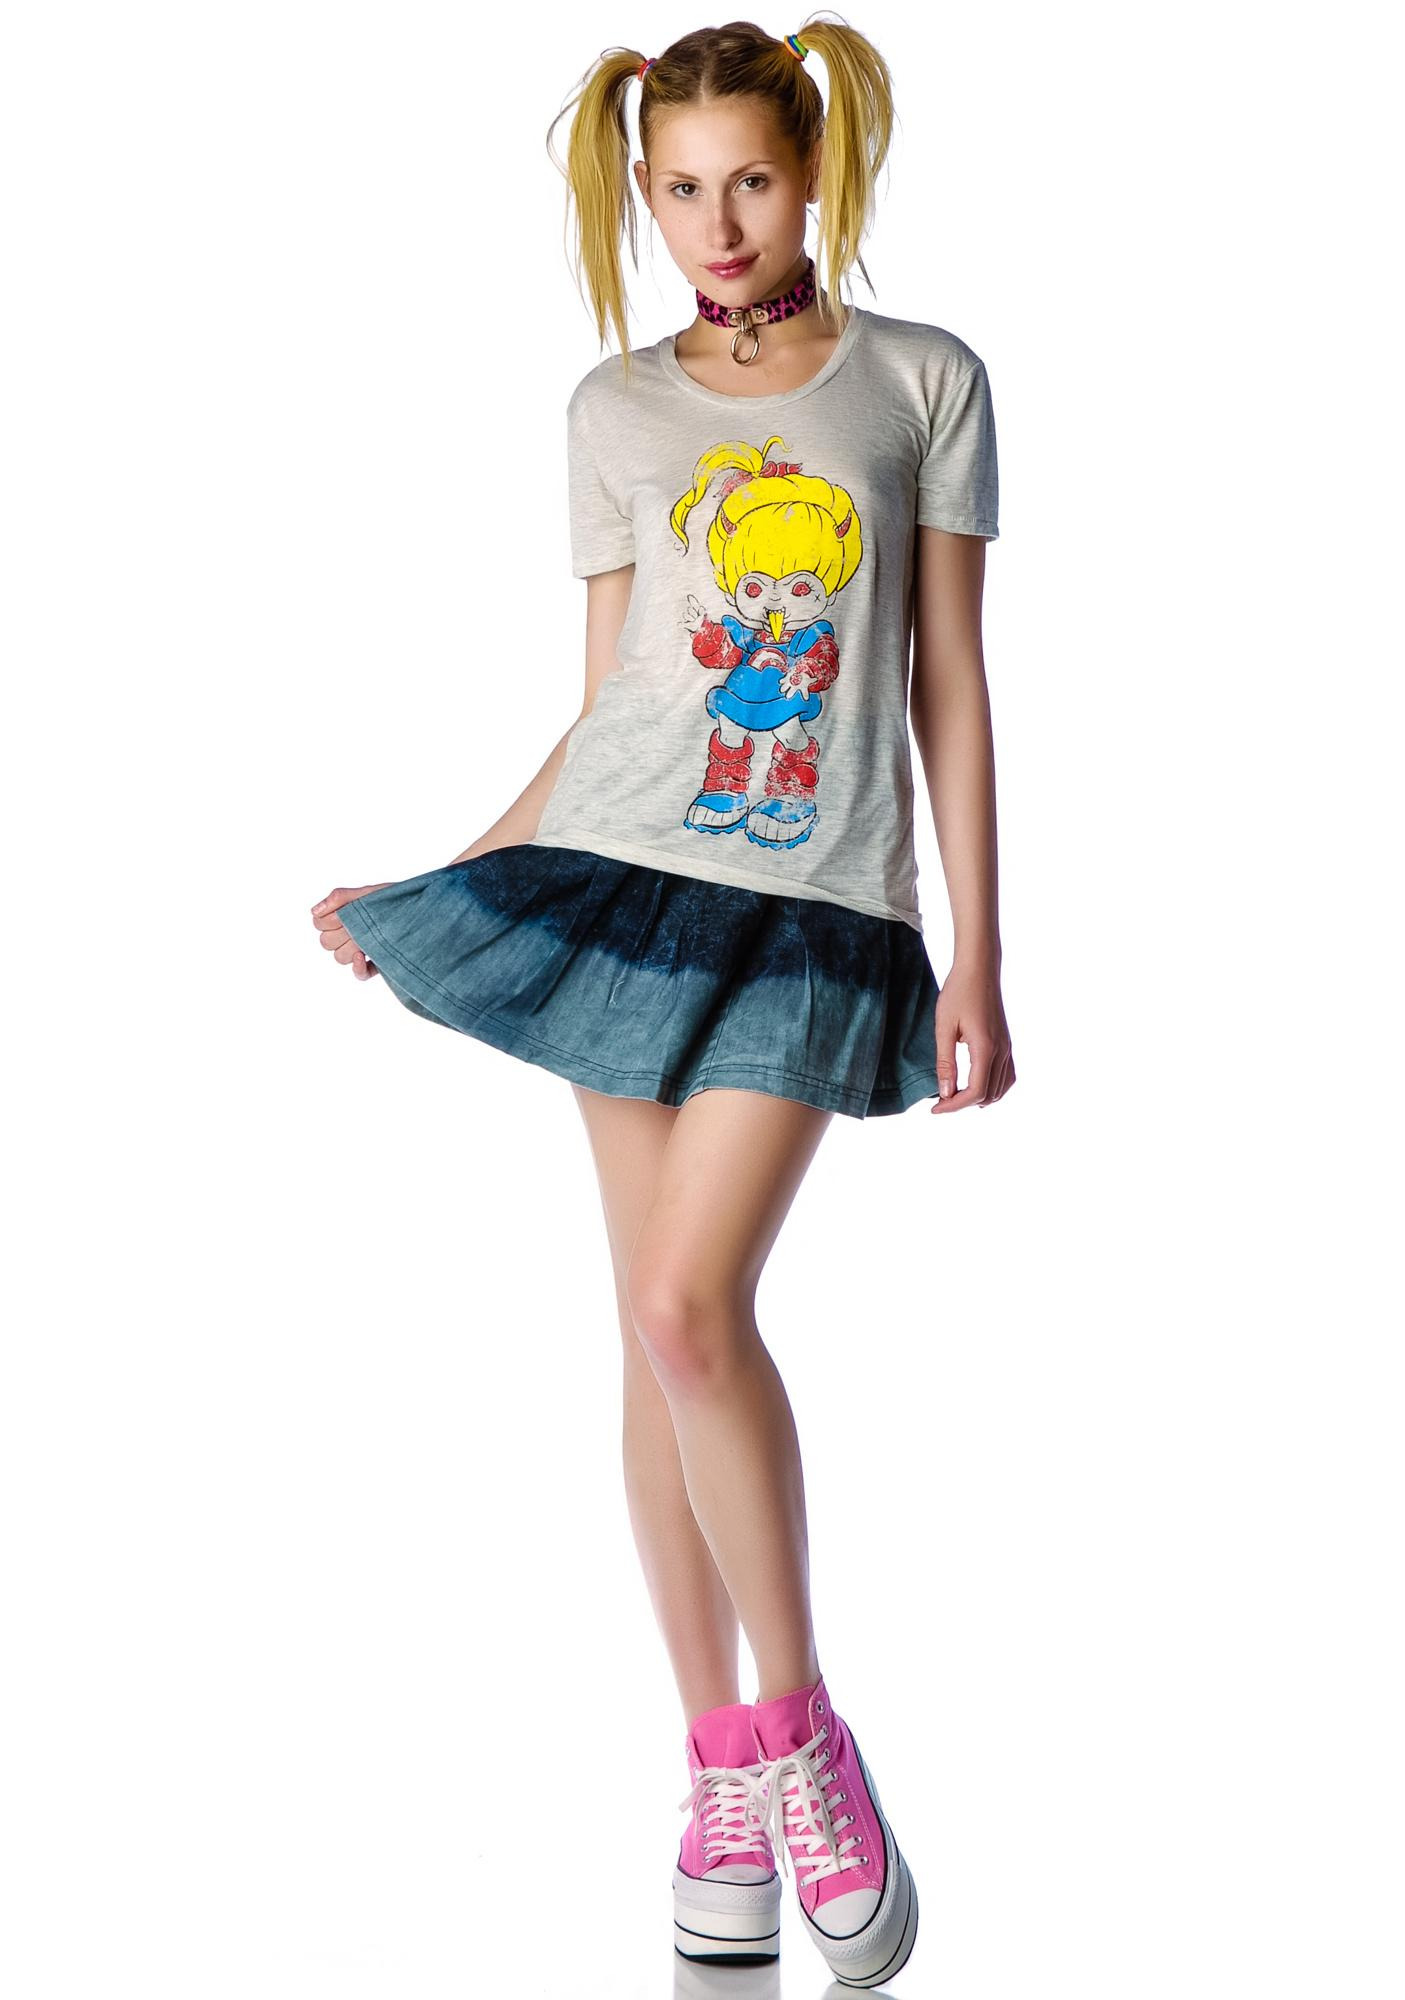 Kill Brand Rainbow Chic Tee